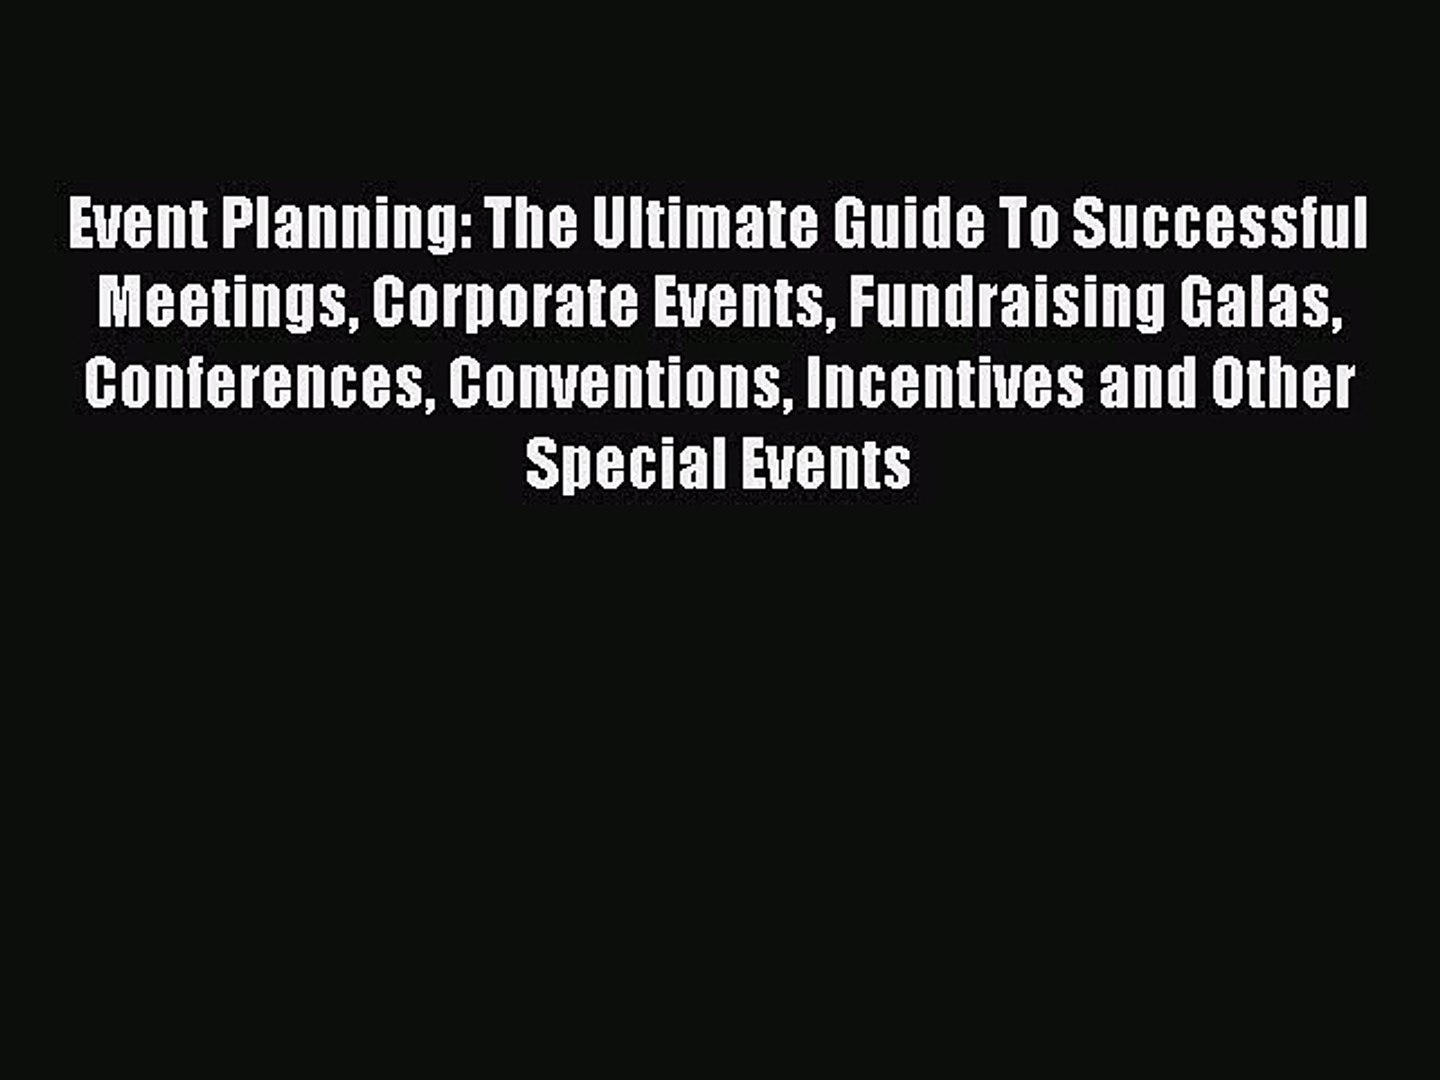 Read Event Planning: The Ultimate Guide To Successful Meetings Corporate Events Fundraising